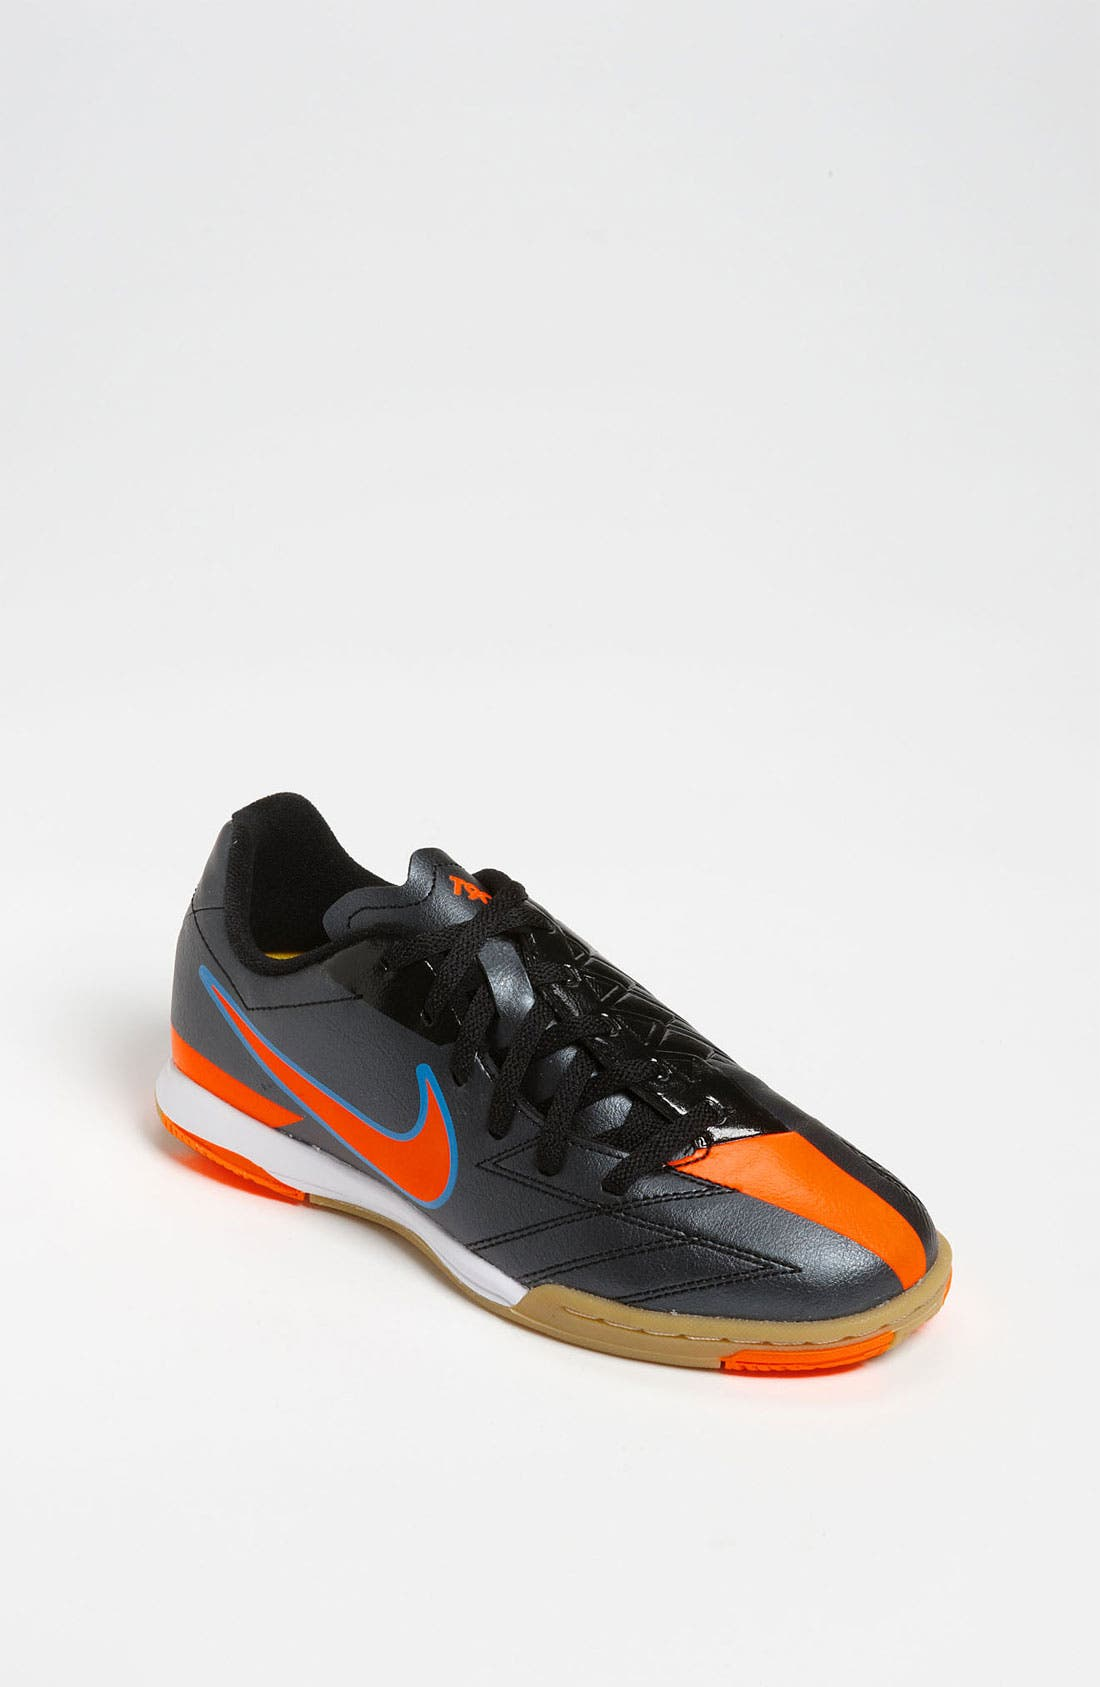 Alternate Image 1 Selected - Nike 'T90 Shoot IV' Soccer Shoe (Toddler, Little Kid & Big Kid)